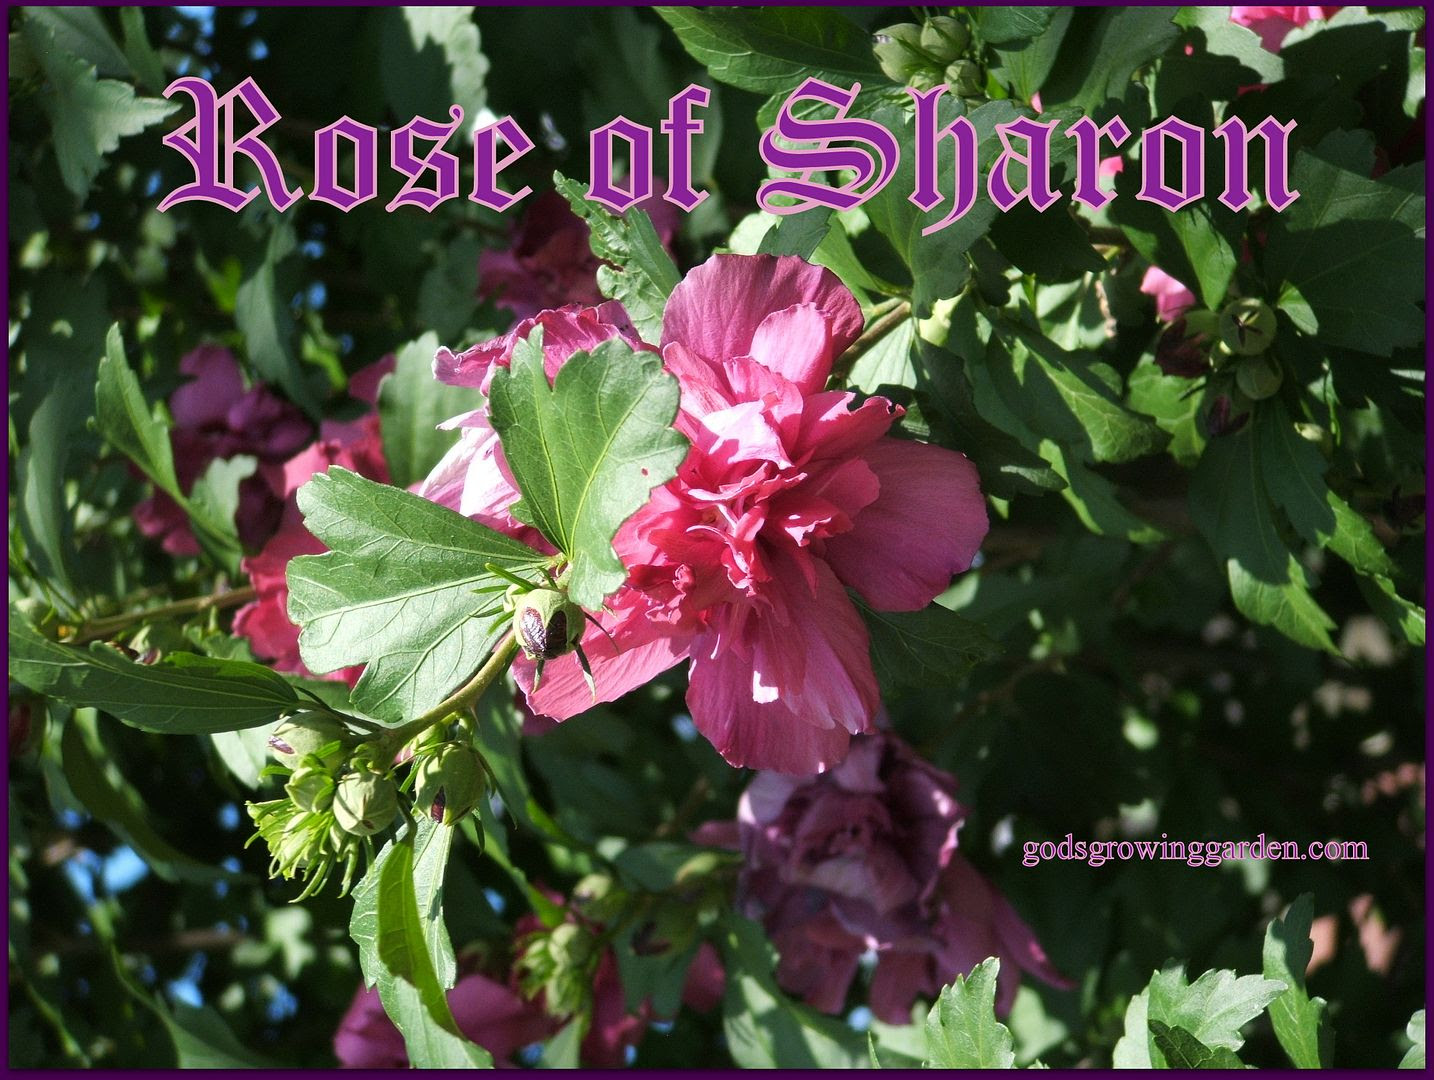 Rose of Sharon by Angie Ouellette-Tower for godsgrowinggarden.com photo 004_zpsdff6c2ee.jpg